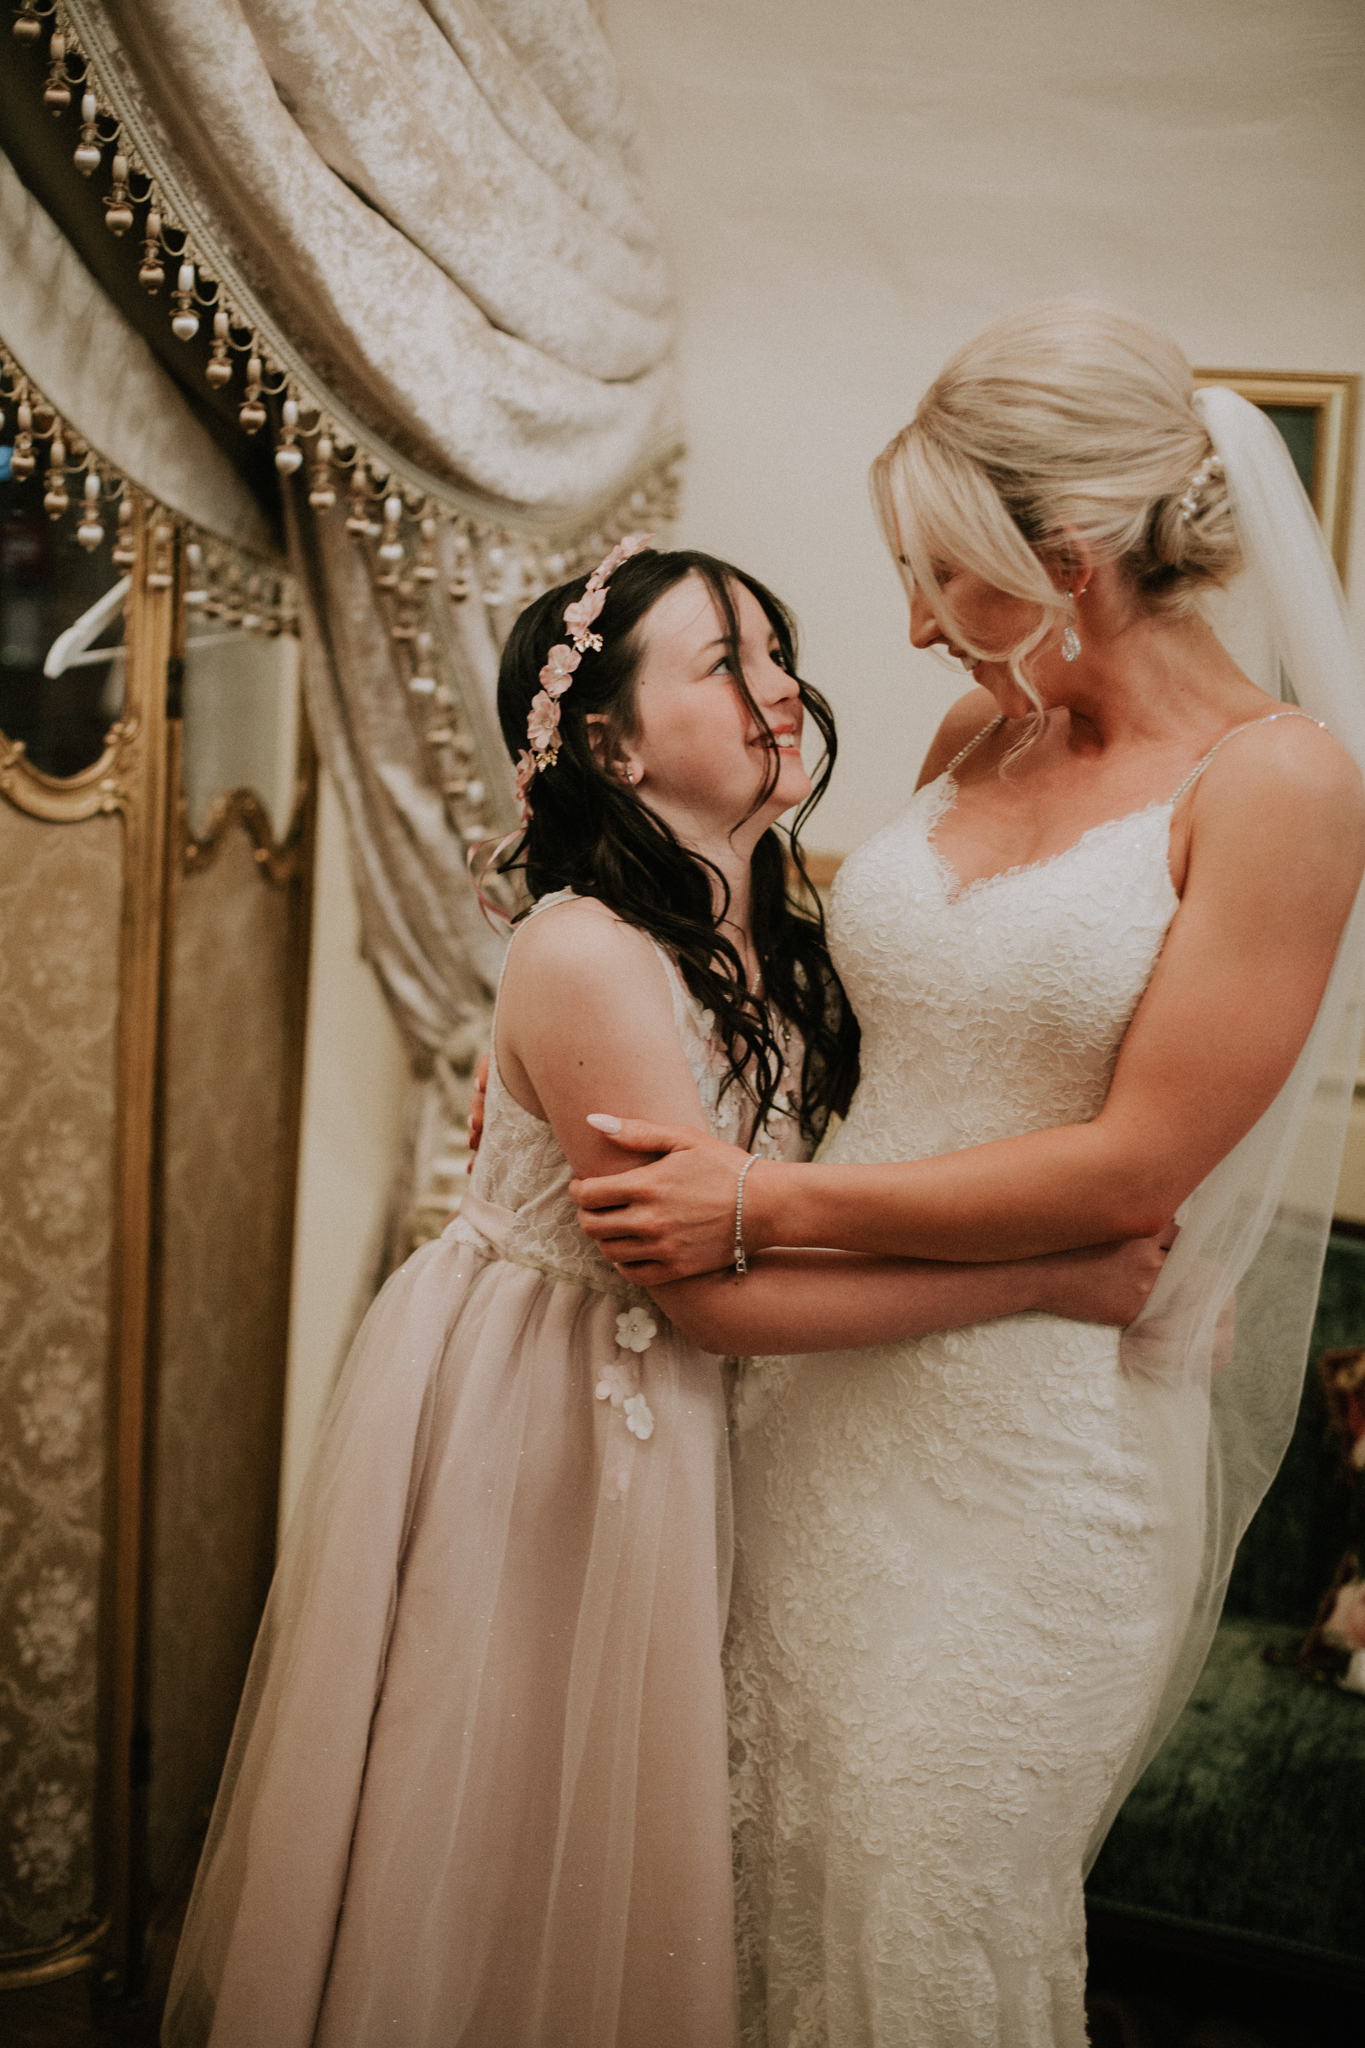 A special moment between the bride and junior bridesmaid